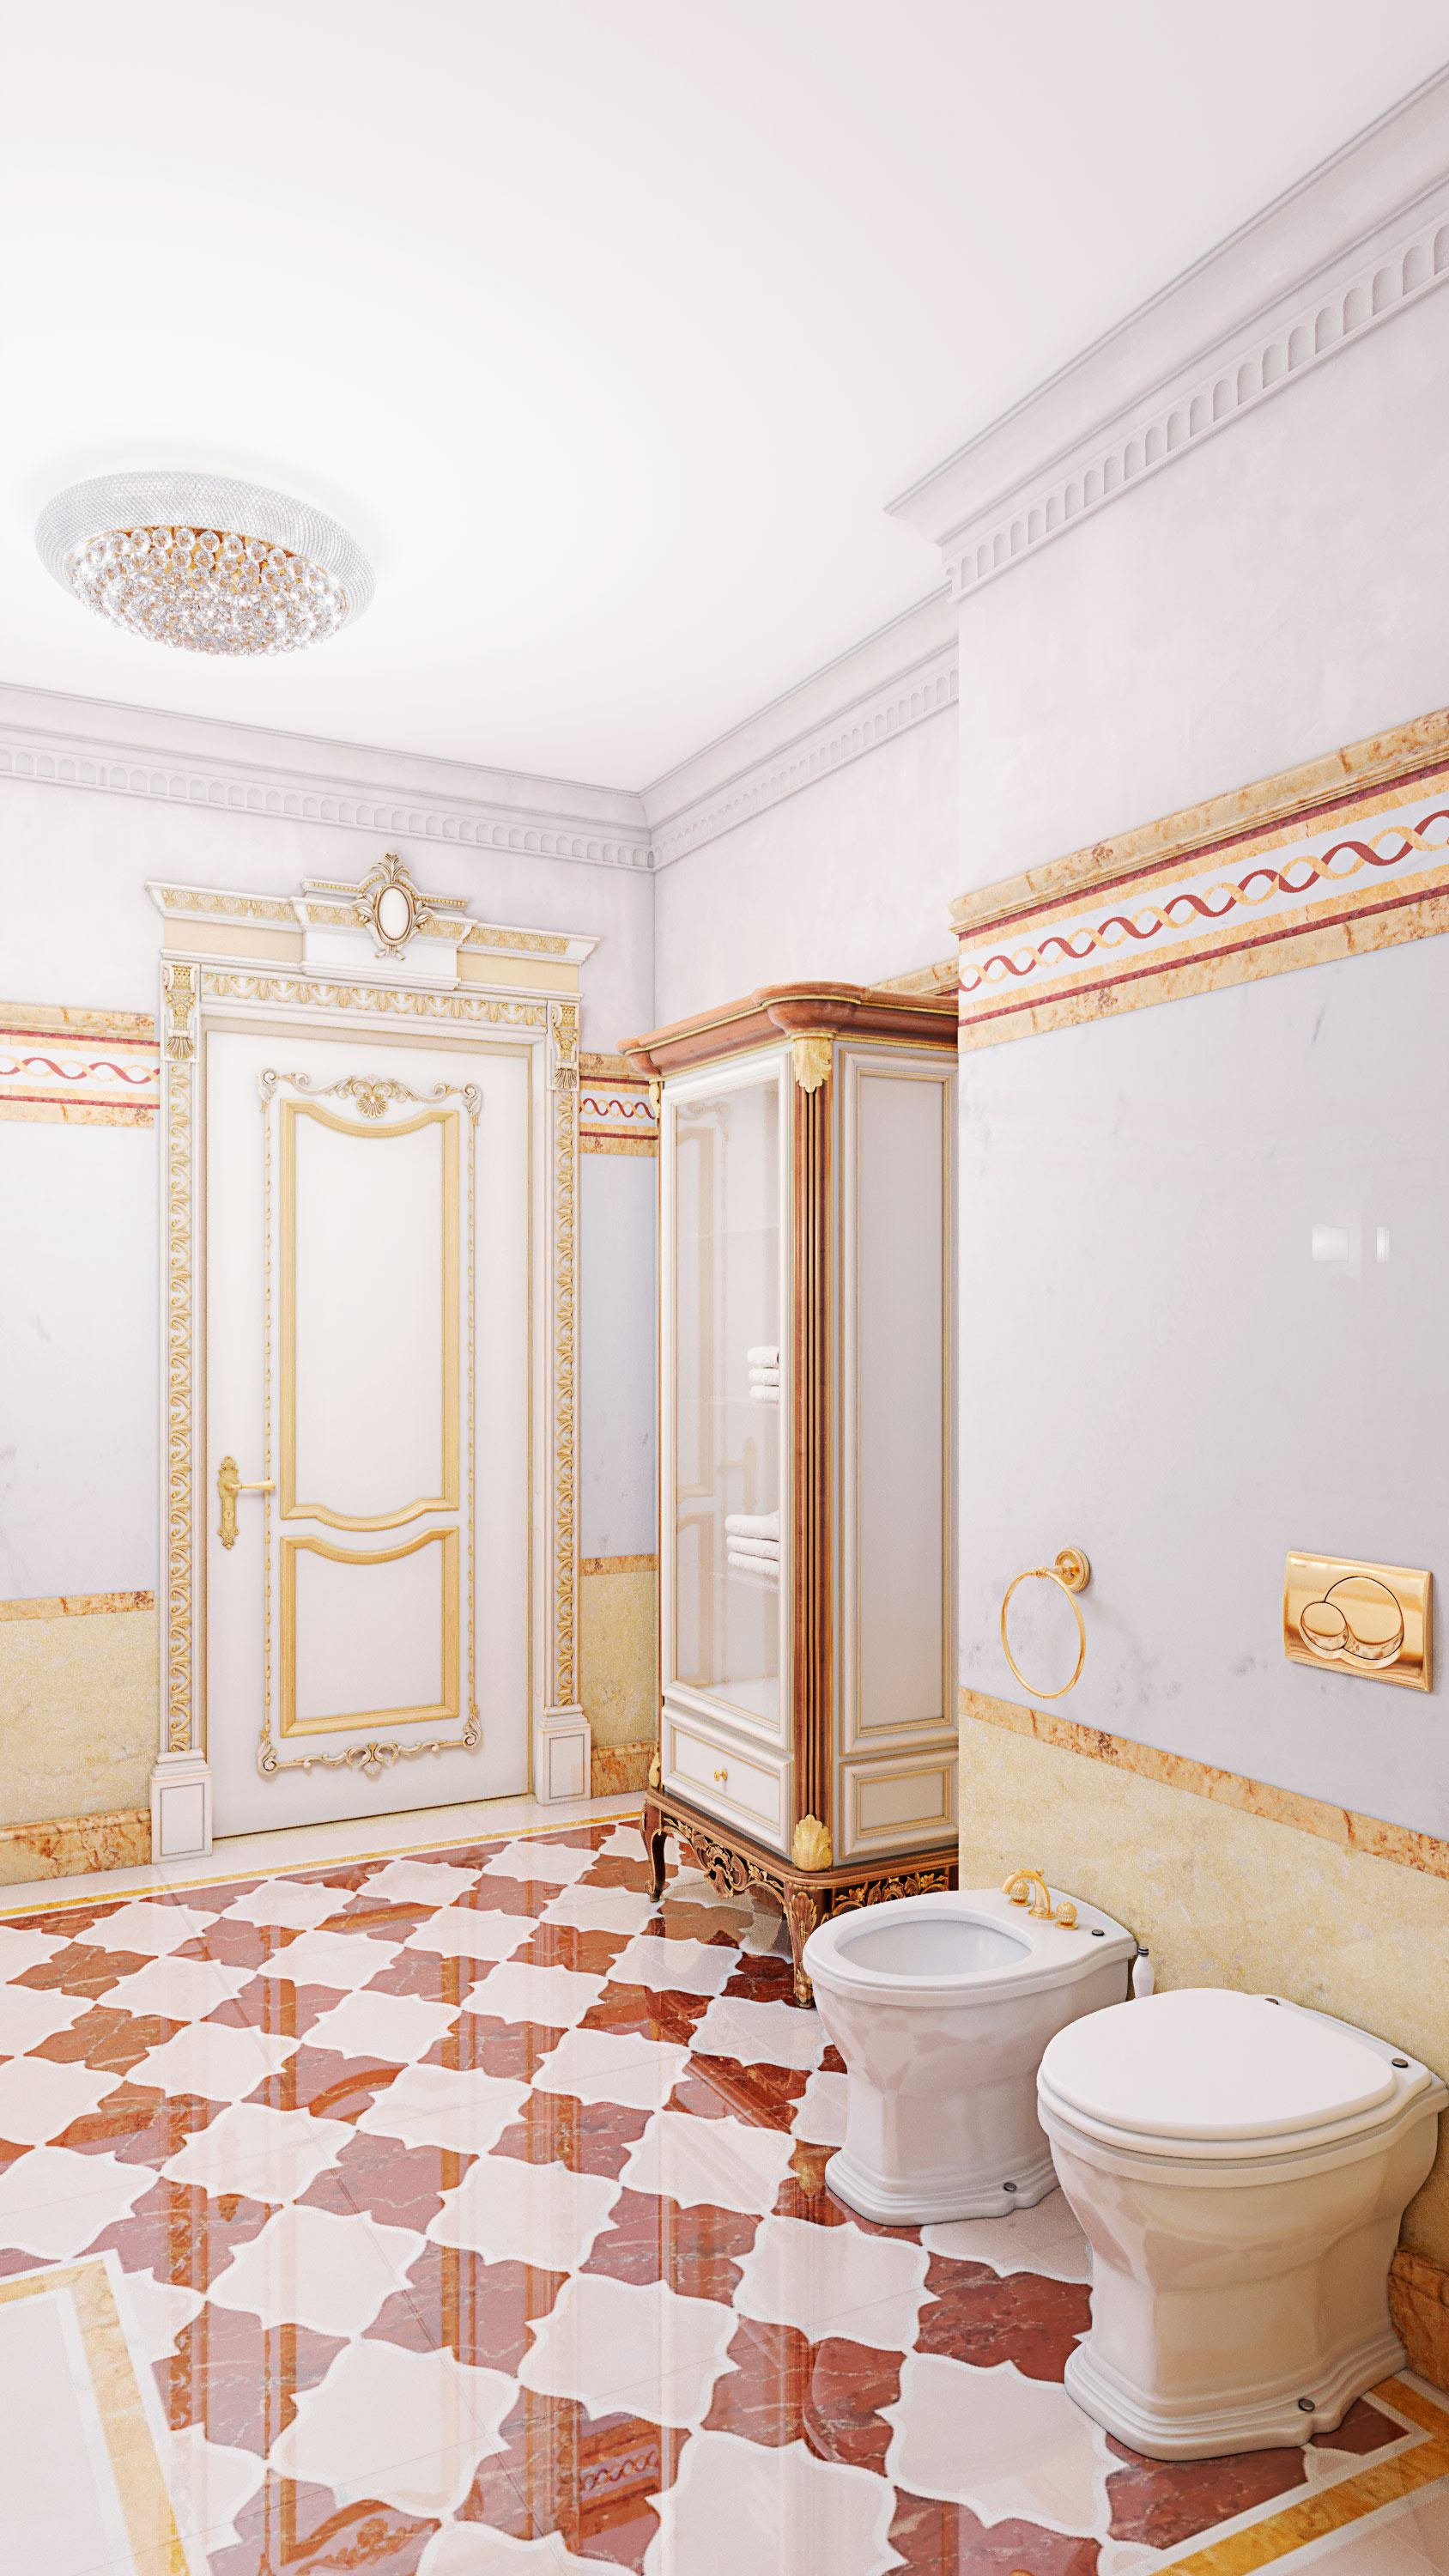 Design project of a bathroom in classic style